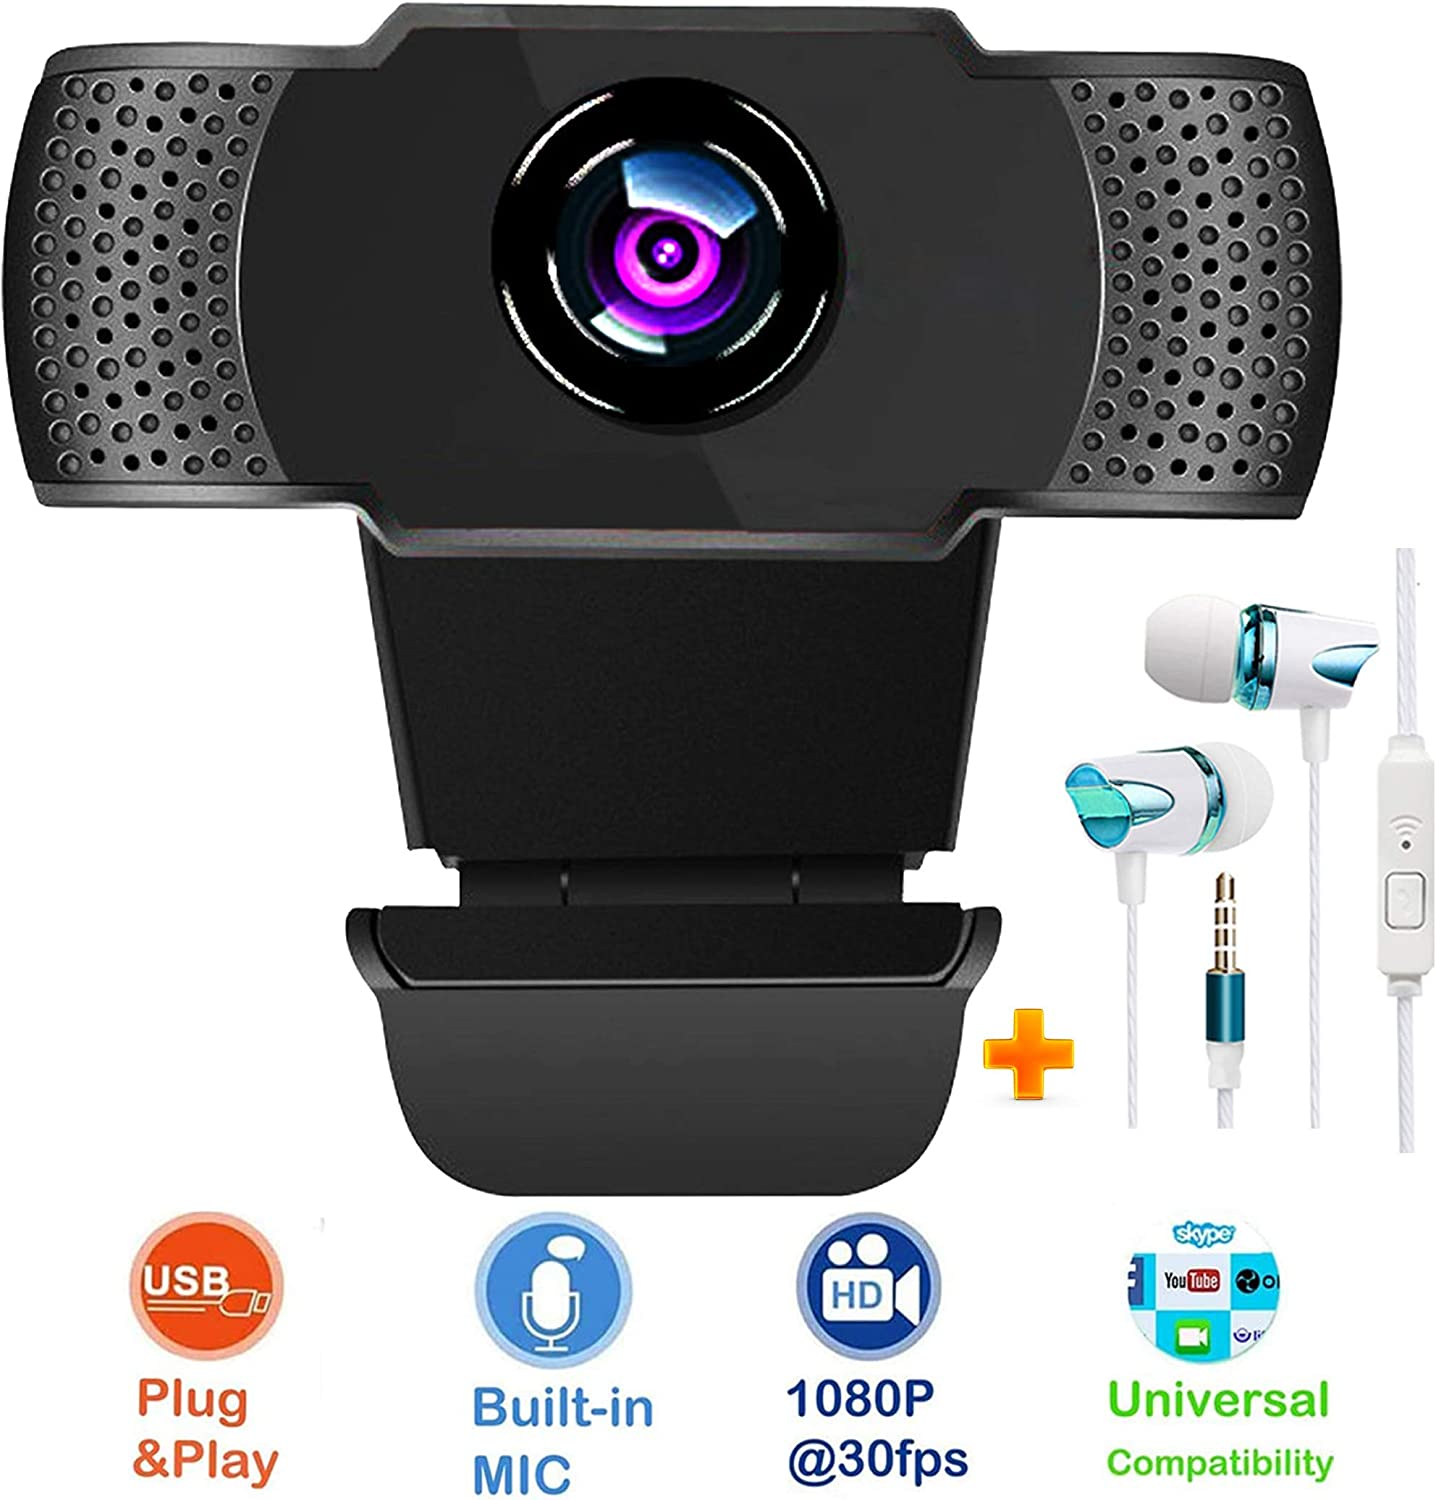 Webcam with Microphone and Headphone for Live Streaming Gaming Distance Meeting Video Record. USB Web Camera with Extra 3.5mm Earphones Compatible with Mac Laptop Desktop PC TV Monitor Ps4